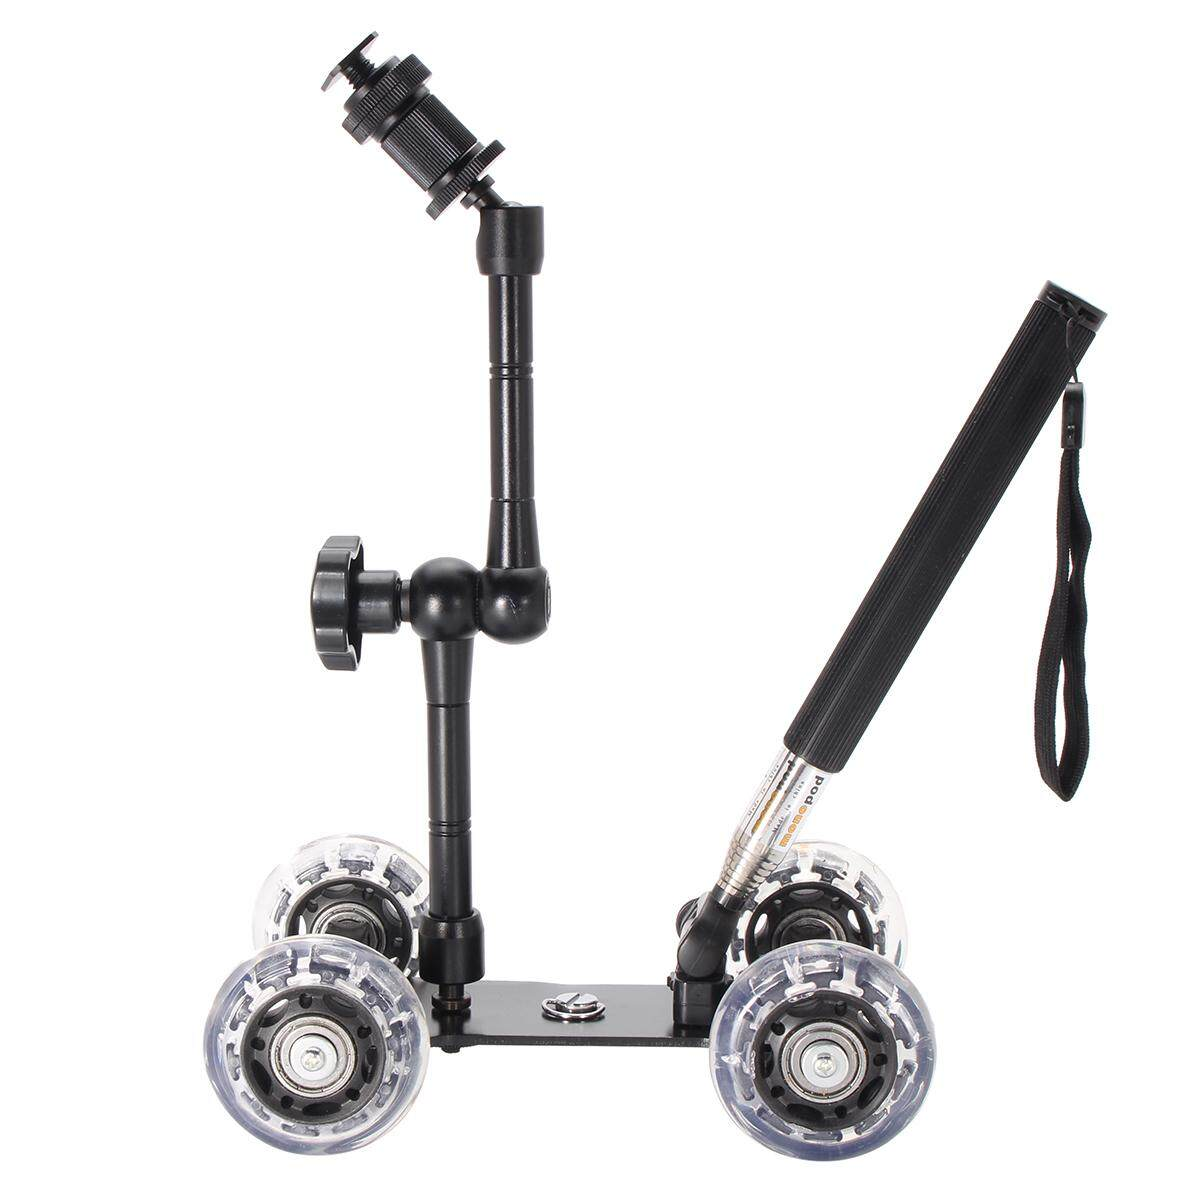 Table Camera Video Wheels Rail Rolling Track Slider Mobile Dolly Car Glide Set By Freebang.